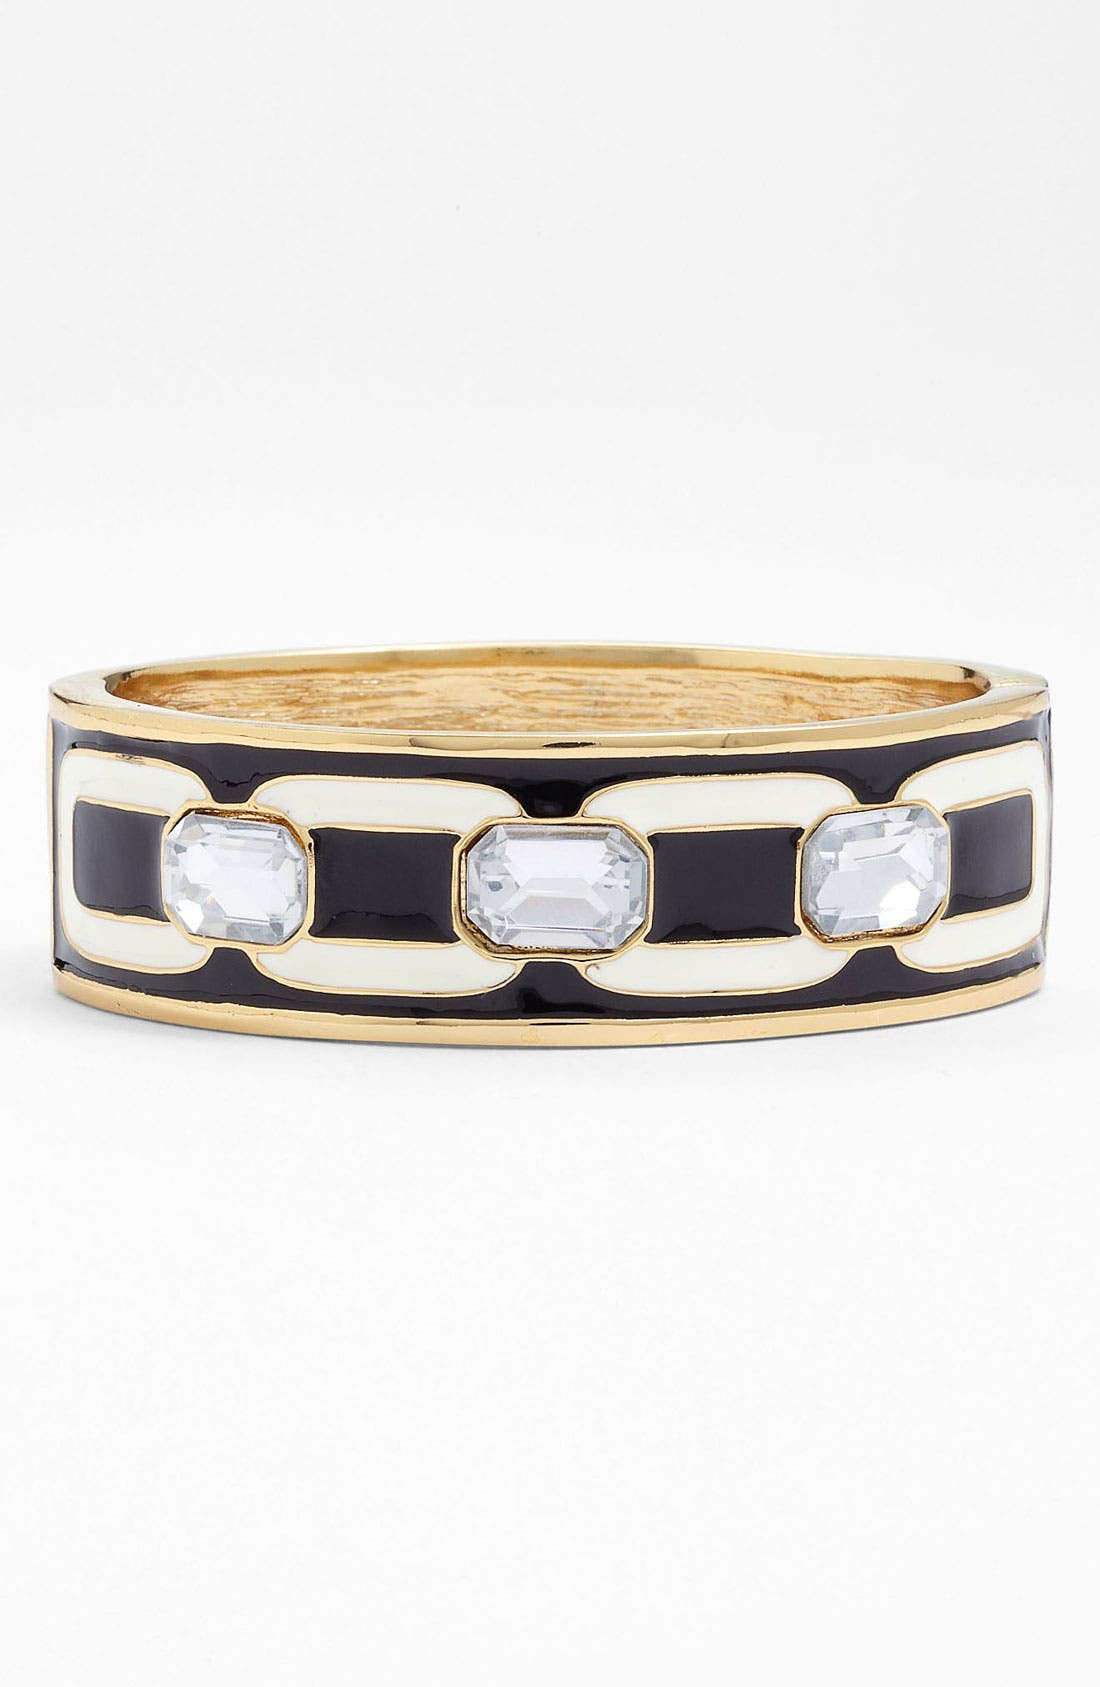 Main Image - Anne Klein 'Deco'ed Out' Wide Enamel Bangle